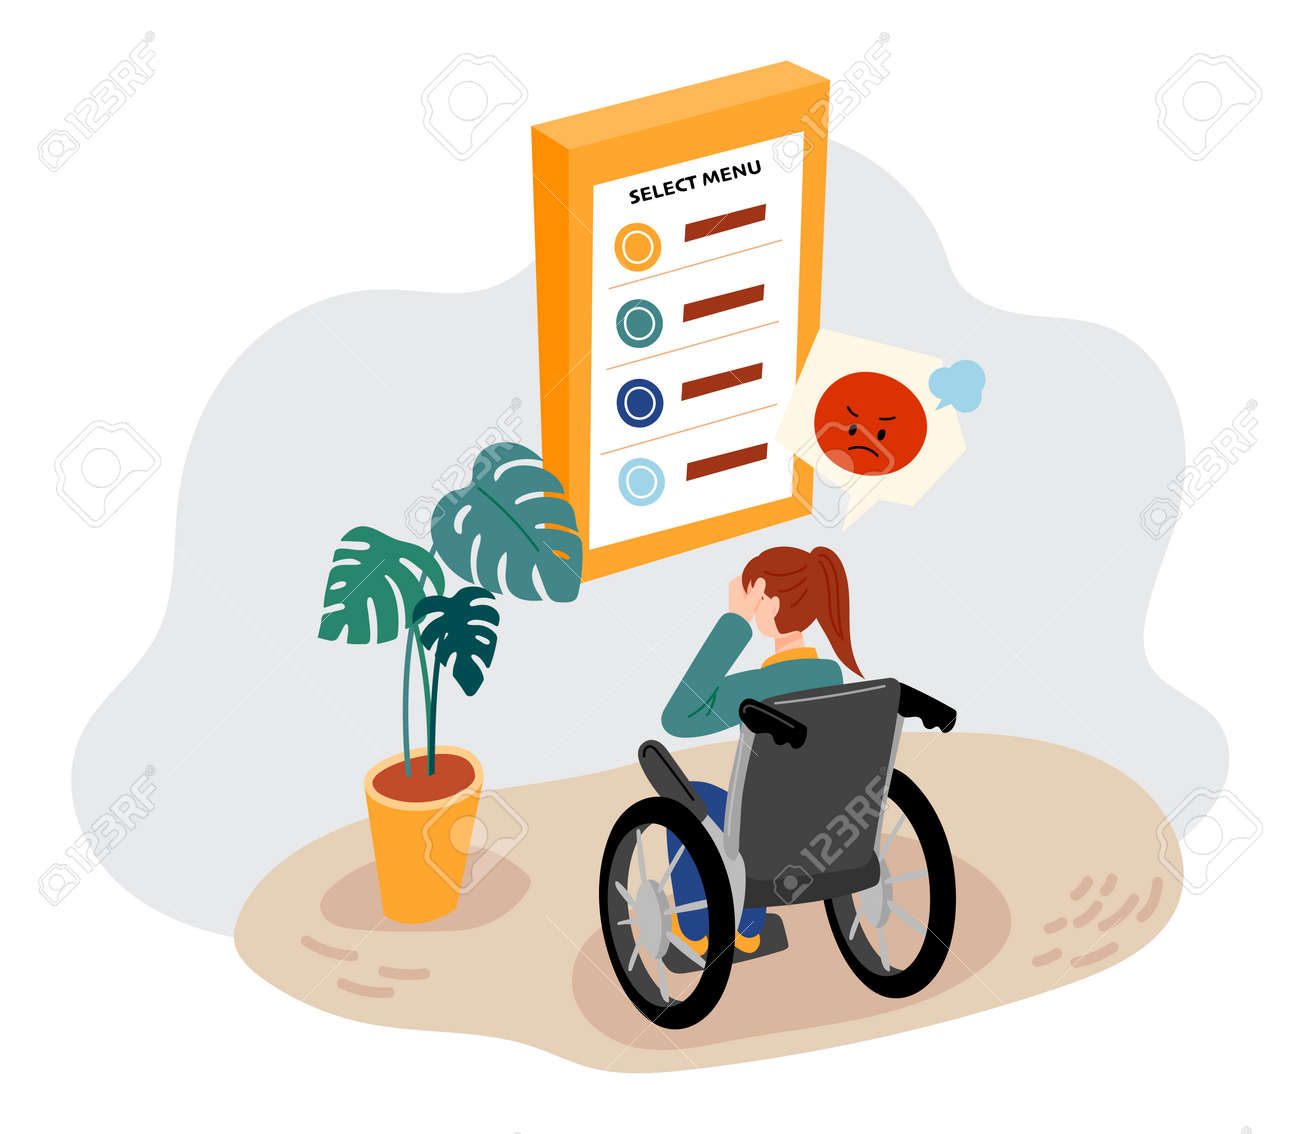 The kiosk is set too high for disabled people in wheelchairs. - 172561345